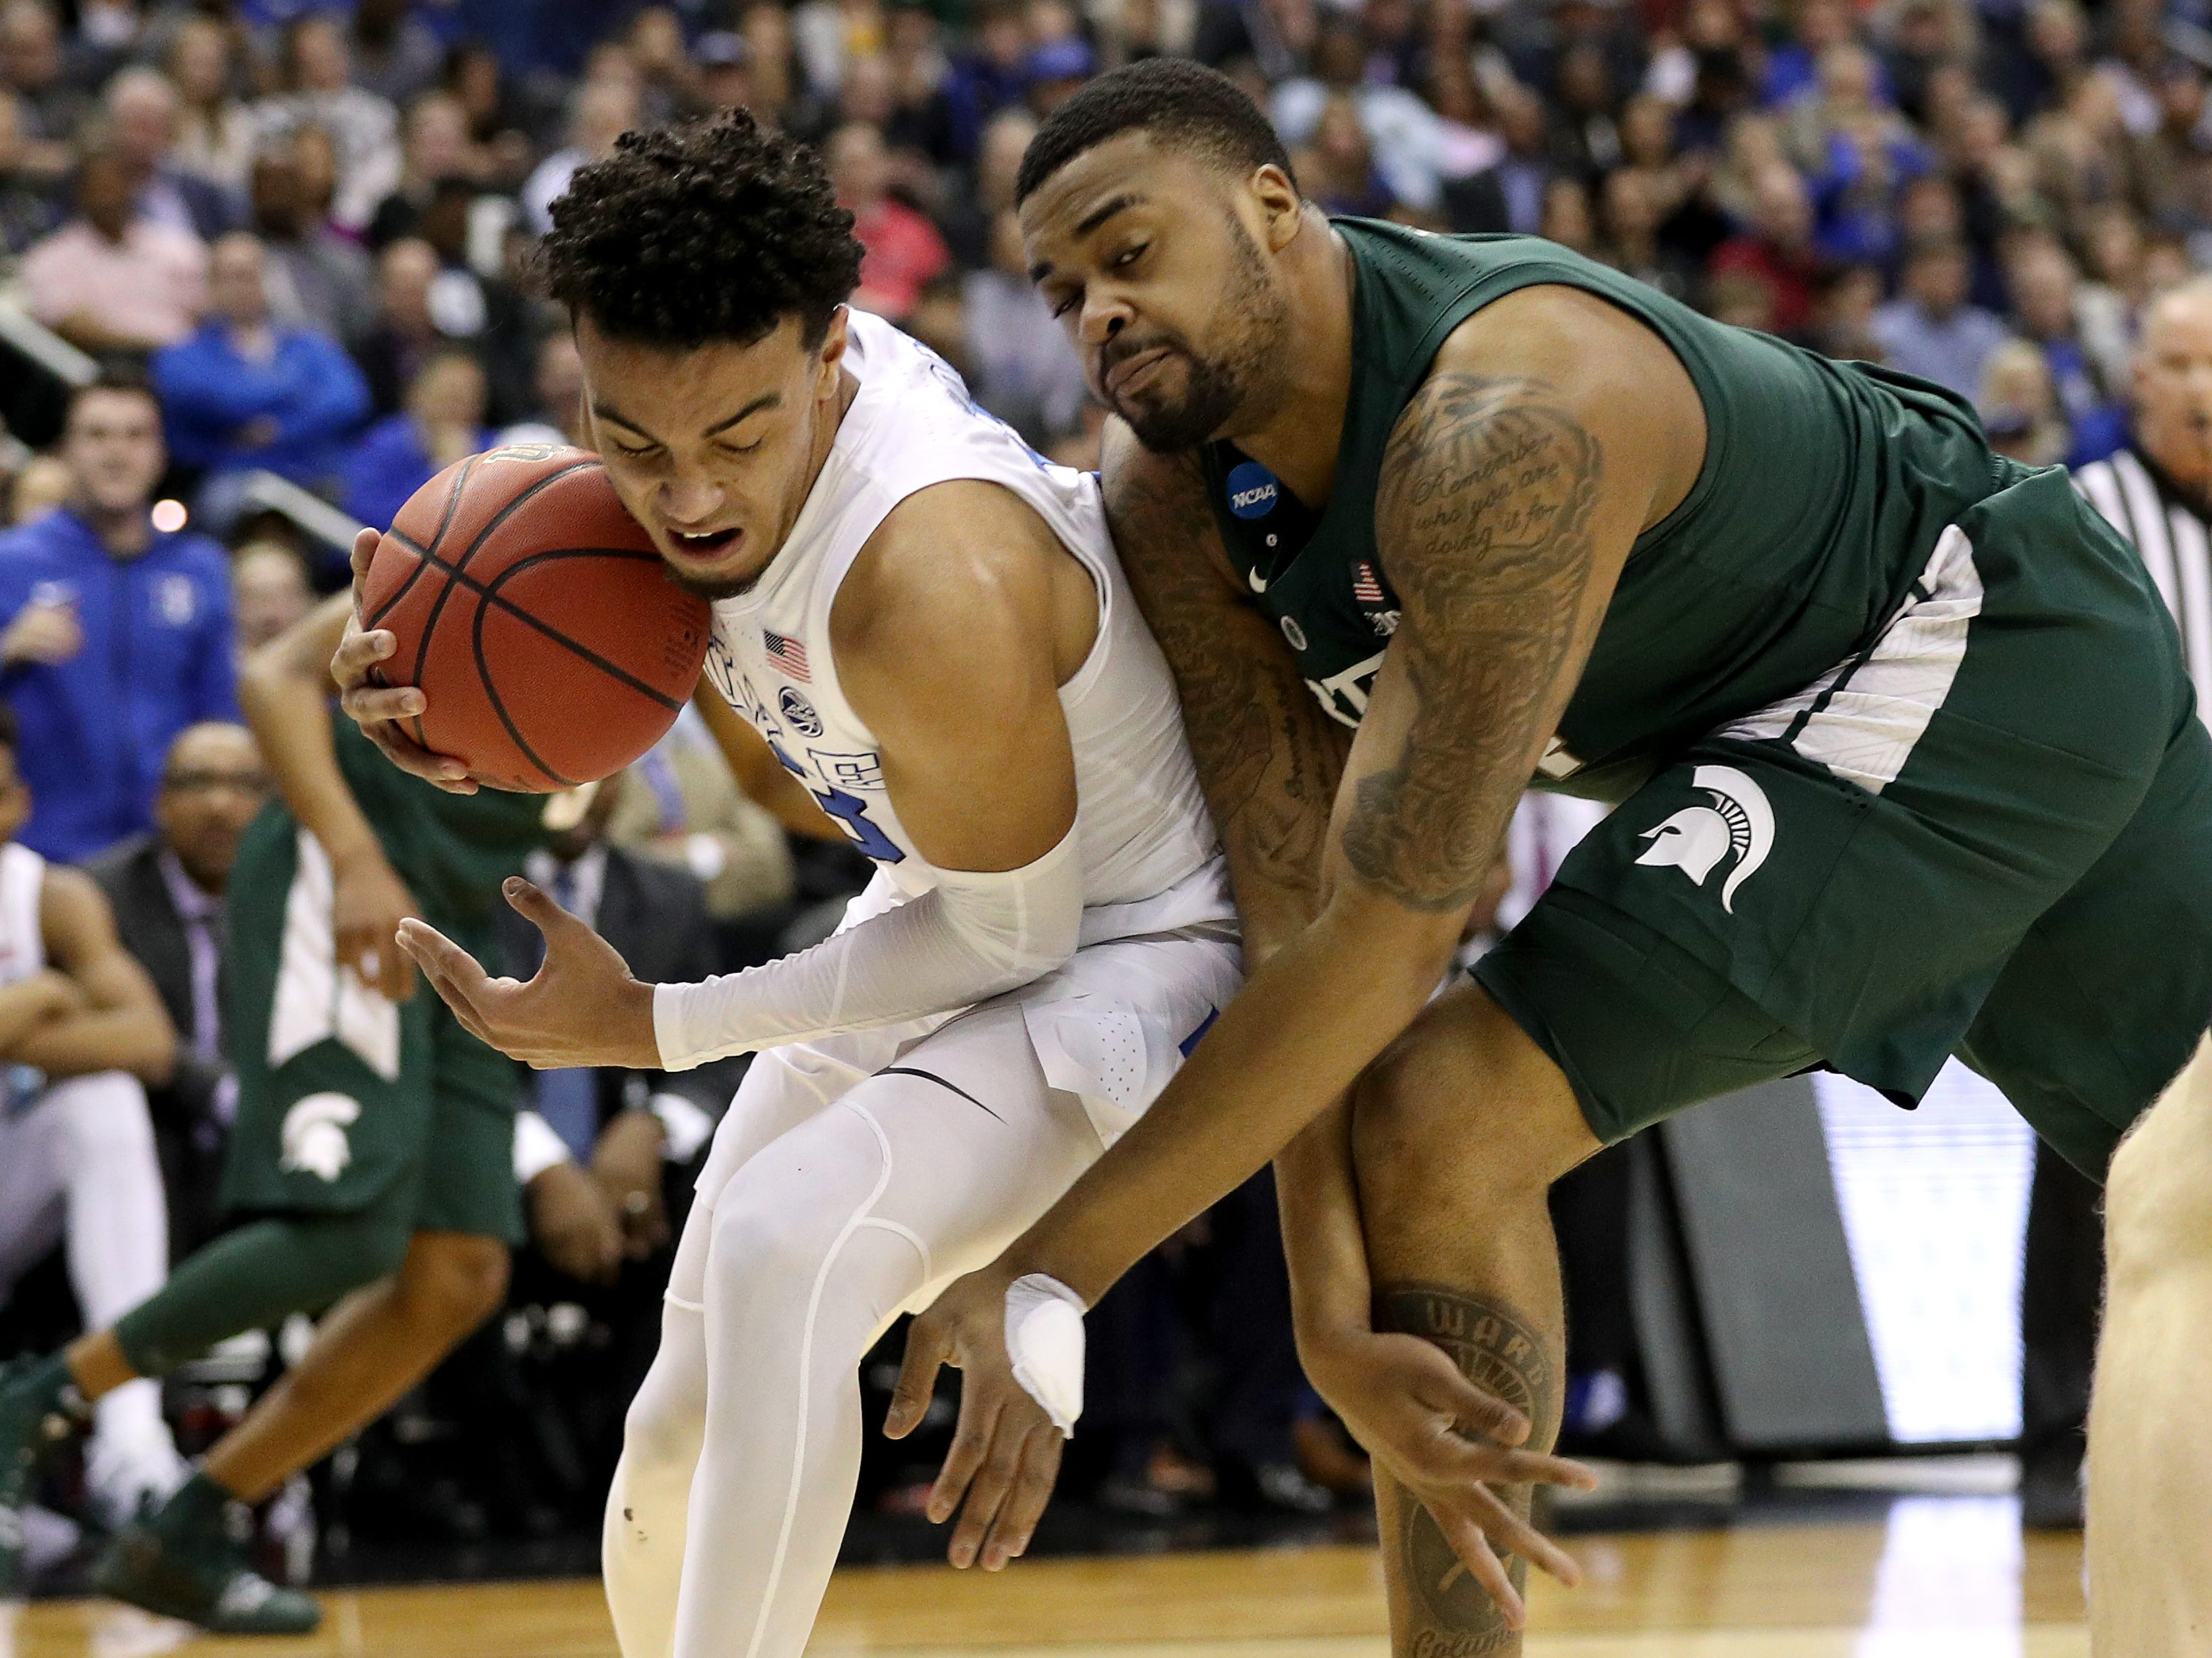 Tre Jones #3 of the Duke Blue Devils and Nick Ward #44 of the Michigan State Spartans battle for the ball during the first half in the East Regional game of the 2019 NCAA Men's Basketball Tournament at Capital One Arena on March 31, 2019 in Washington, DC.